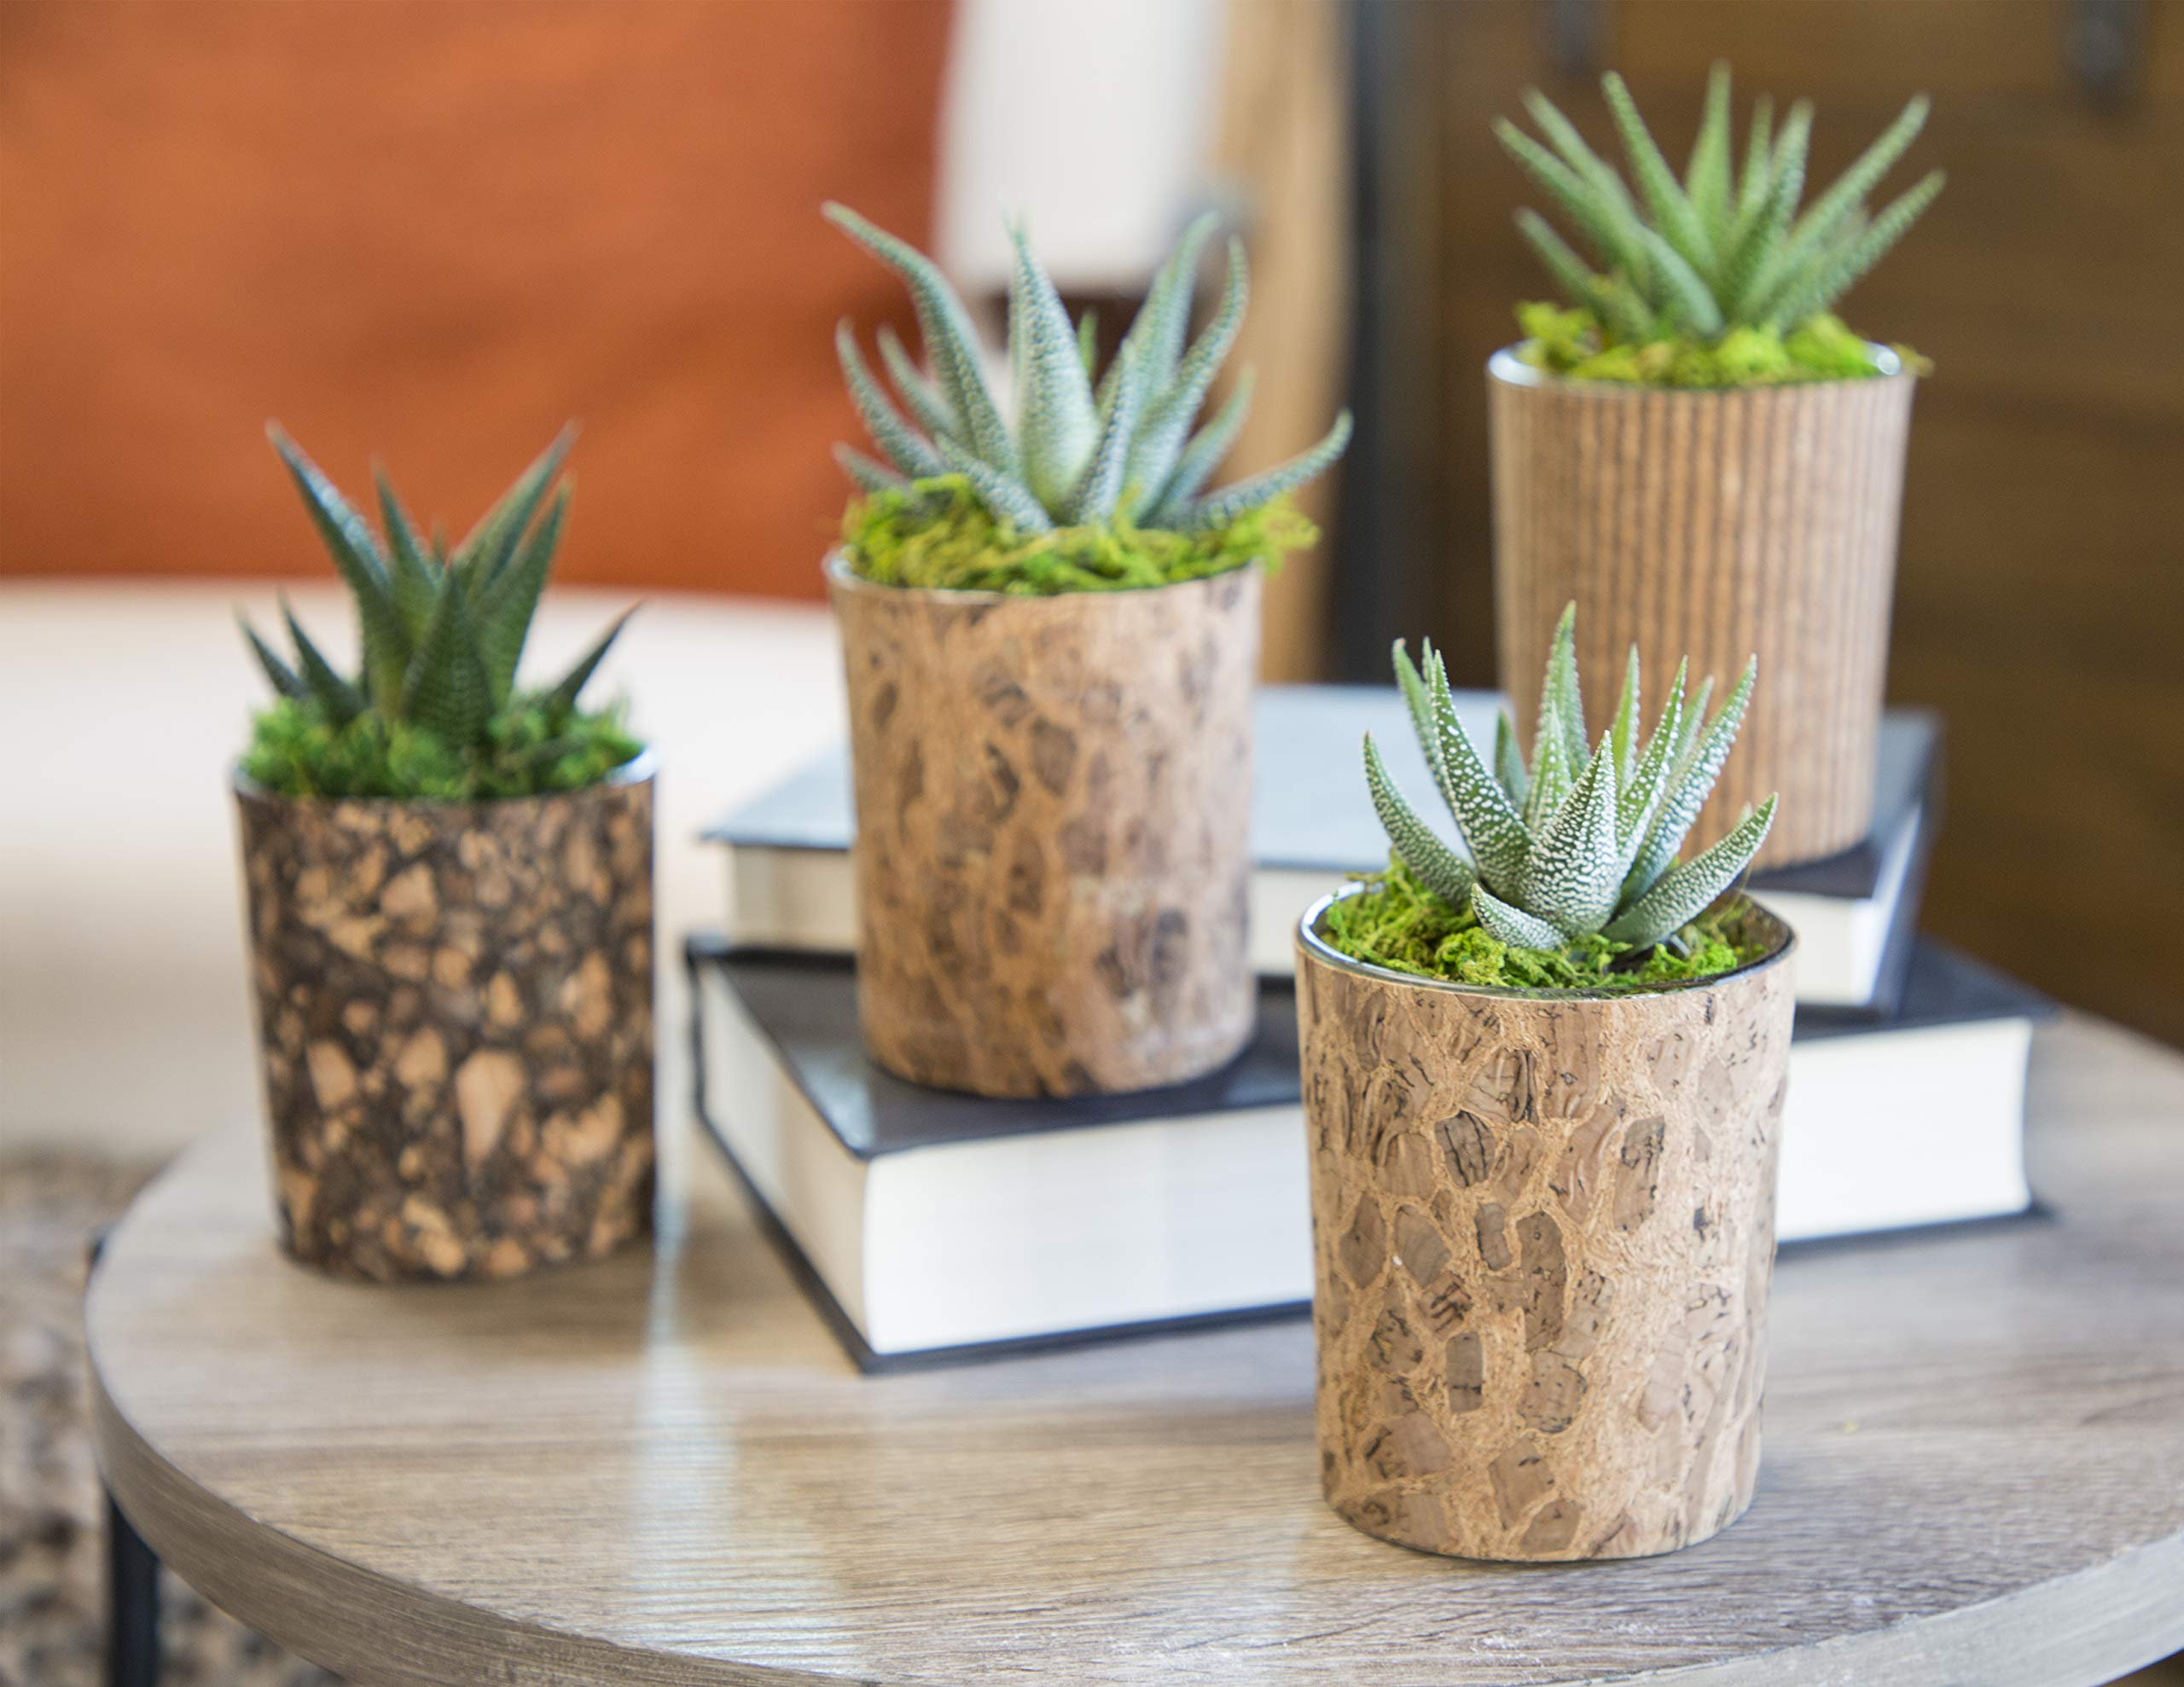 Live Succulents in Glass and Cork Containers Set of 4, From Hallmark Flowers by Hallmark Flowers (Image #2)